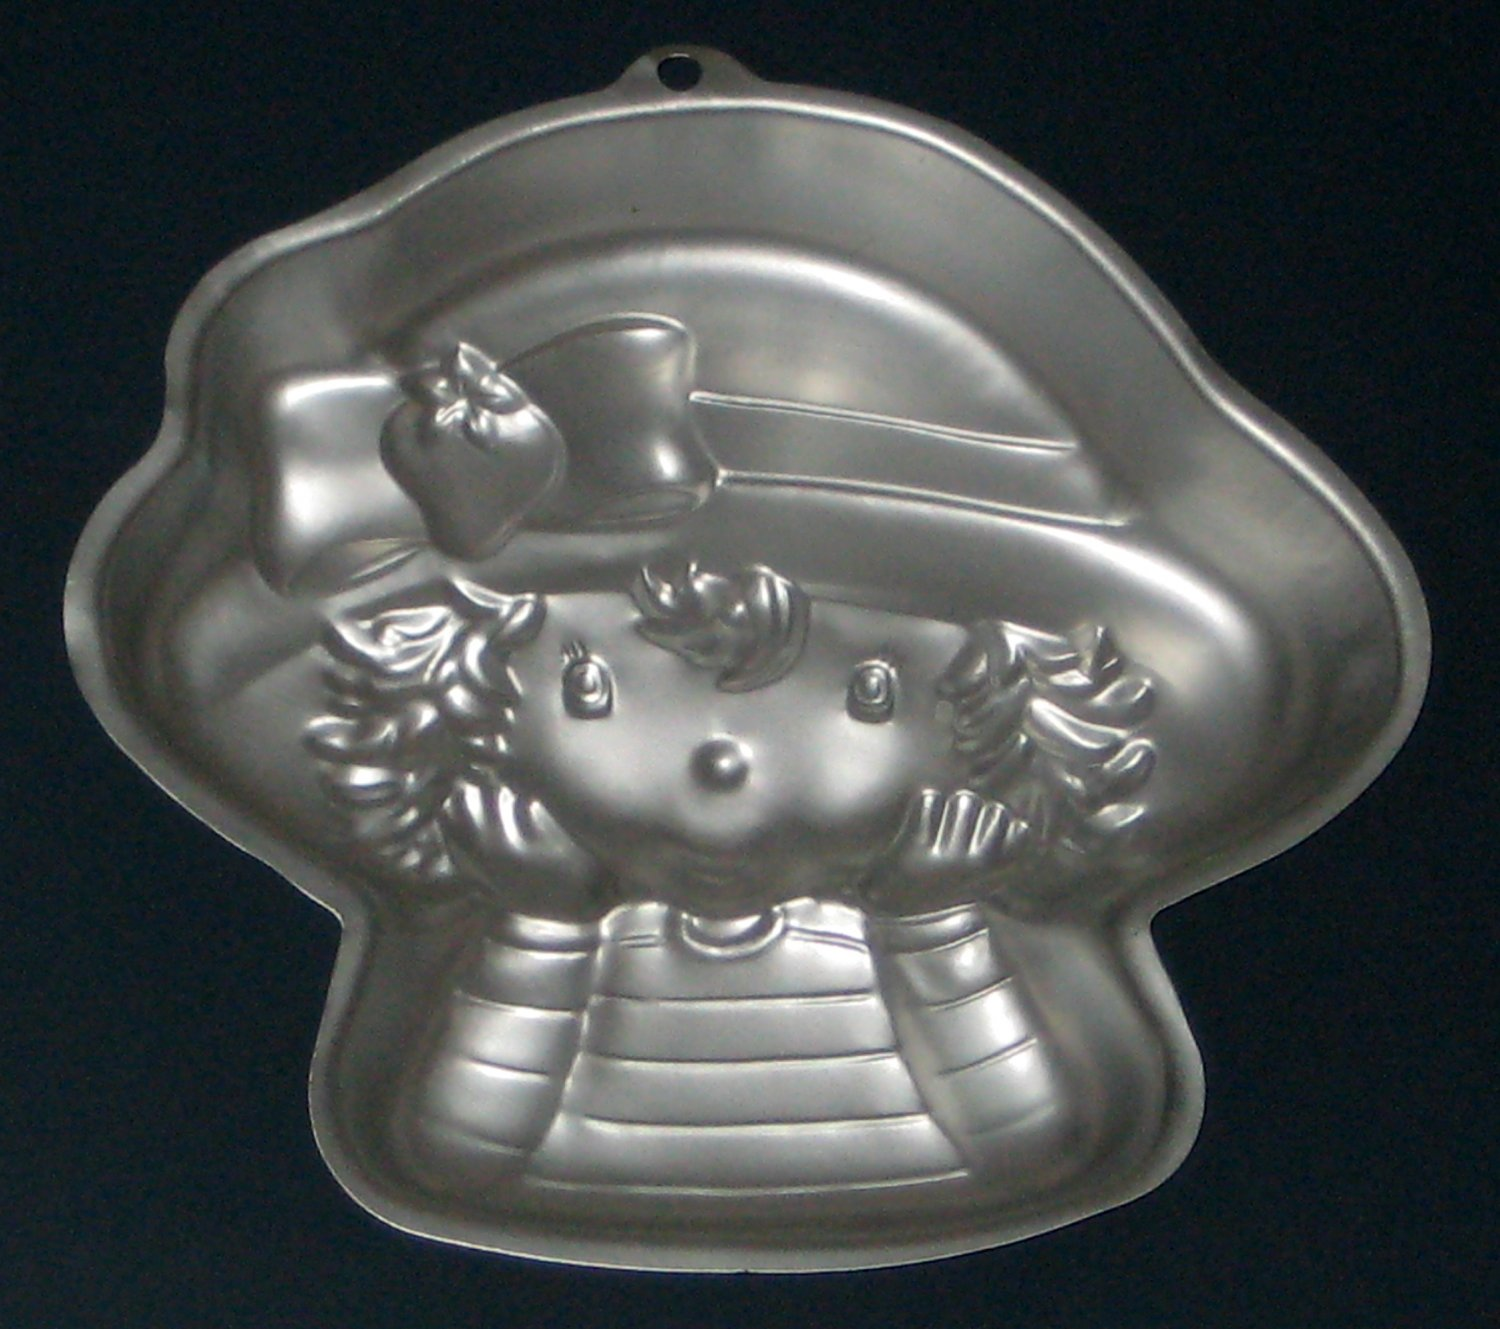 SOLD Strawberry Shortcake Wilton Aluminum Cake Pan 2105-7040